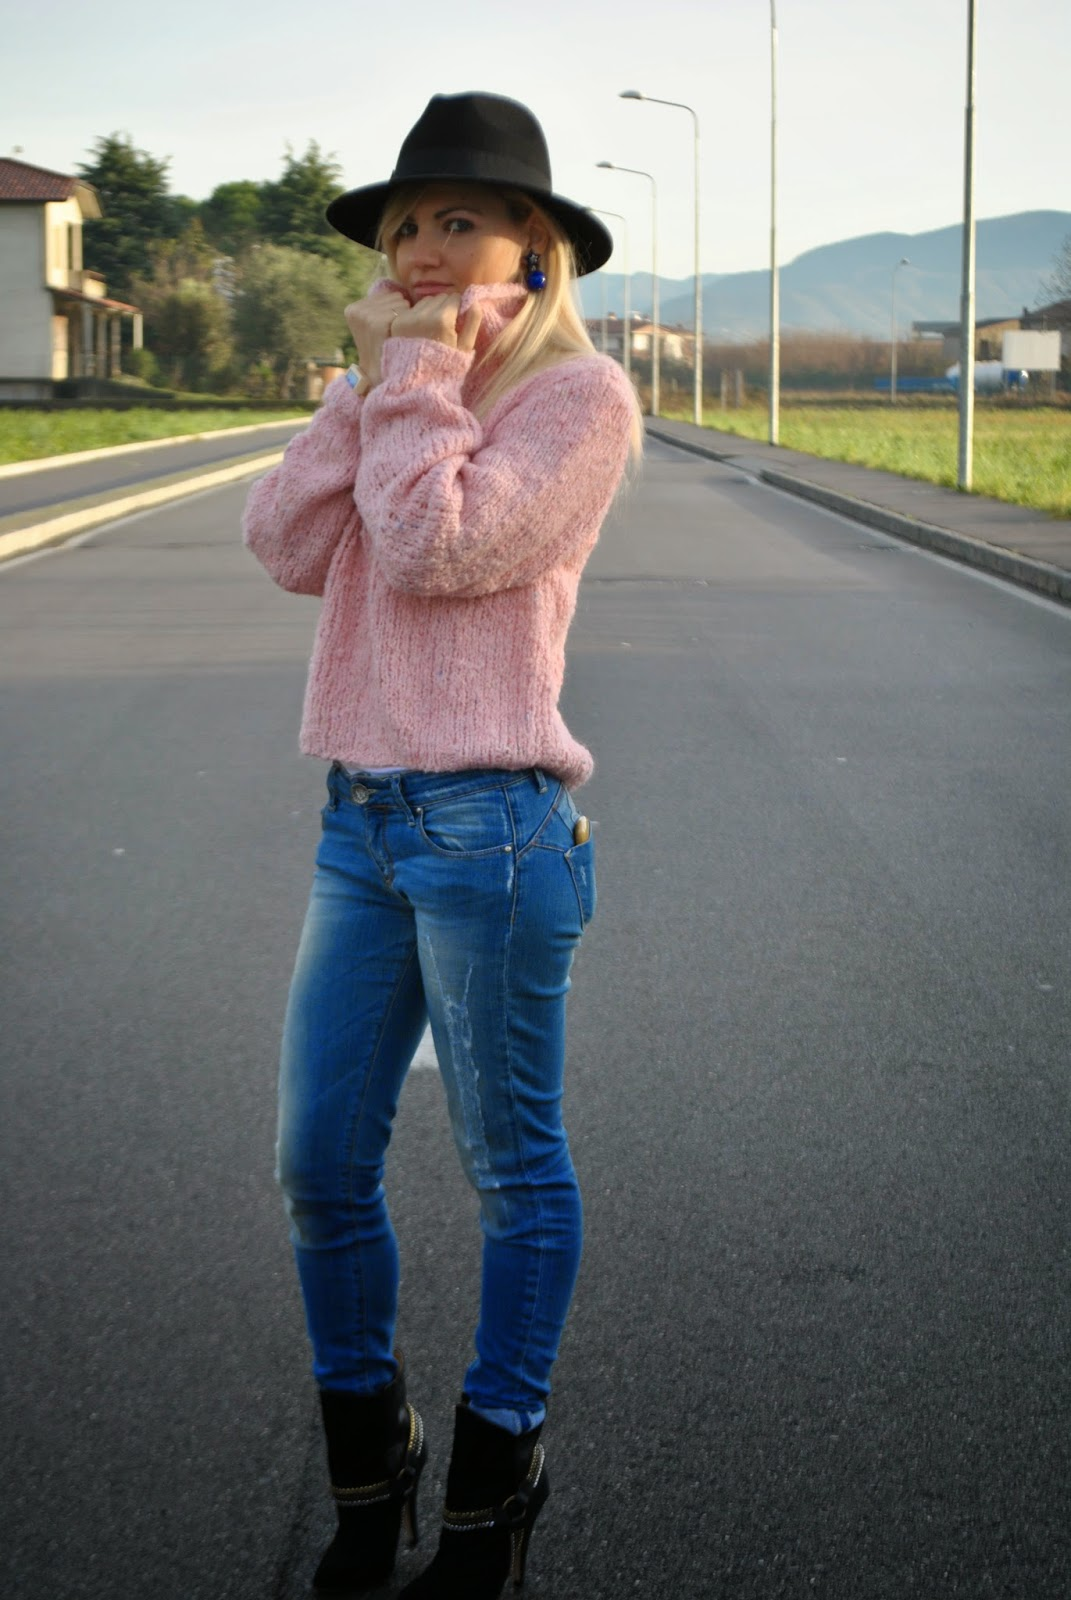 outfit maglione collo alto outfit maglione rosa outfit jeans tacchi abbinamenti jeans e tacchi cappello fedora abbinamenti cappello fedora abbinamenti maglione collo alto abbinamenti rosa outfit rosa how to wear pink how to wear turtleneck sweater how to wear fedora hat fashion blogger italiane fashion blogger bionde mariafelicia magno color block by felym outfit invernali outfit dicembre 2014 outfit eleganti invernali december outfits winter outfits orologio in legno gufo italy